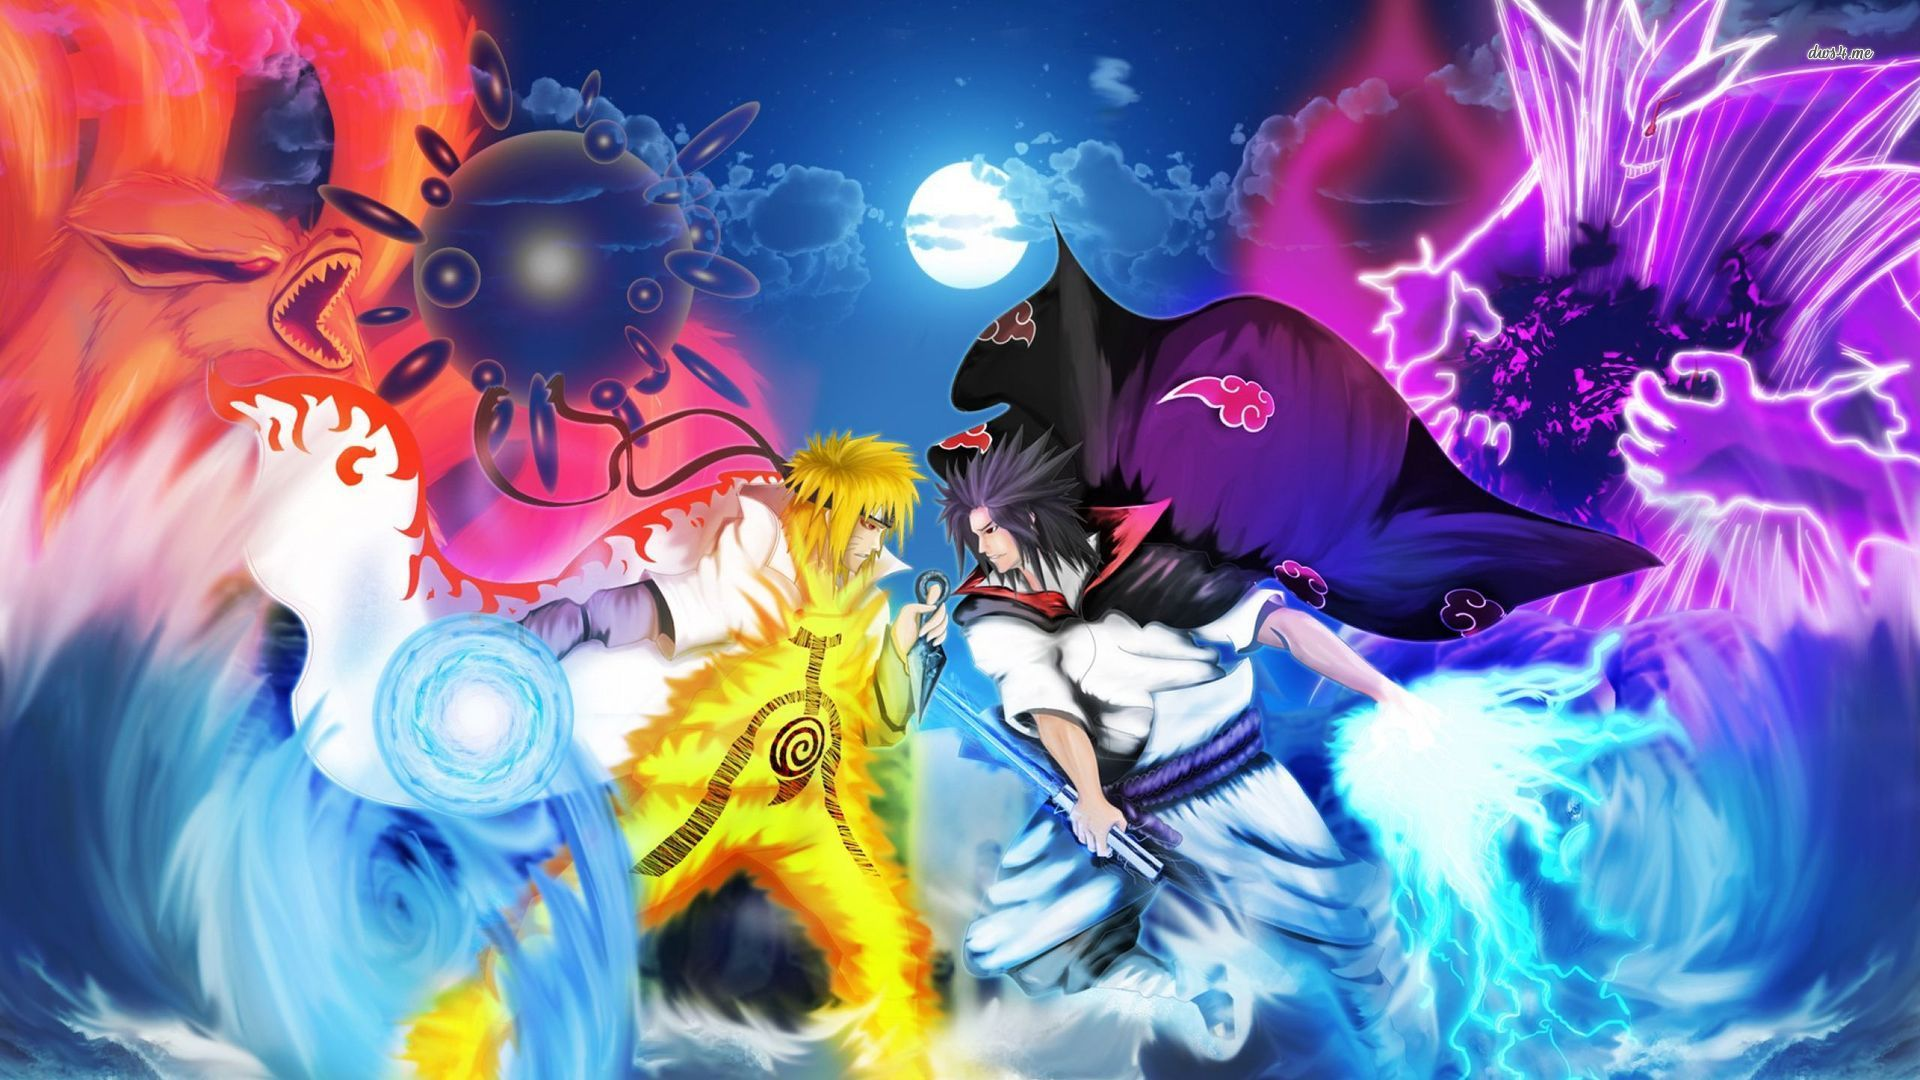 "1920x1080 Naruto Vs Sasuke 4k Wallpapers Hd Resolution » Cinema Wallpaper 1080p""> · Download · 1920x1080 Naruto Wallpaper ..."